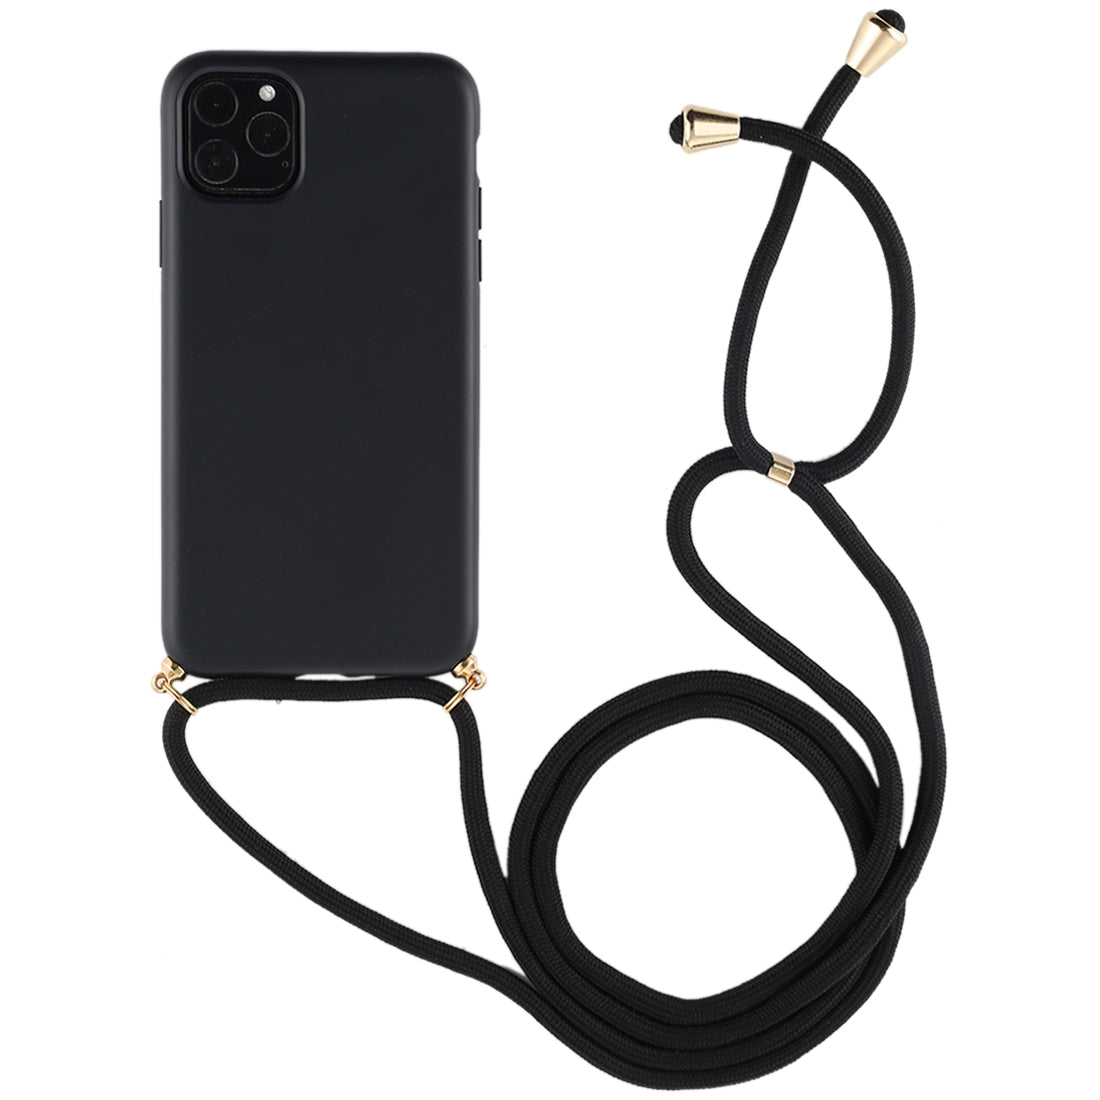 For iPhone 11 TPU Anti-Fall Mobile Phone Case With Lanyard (Black)